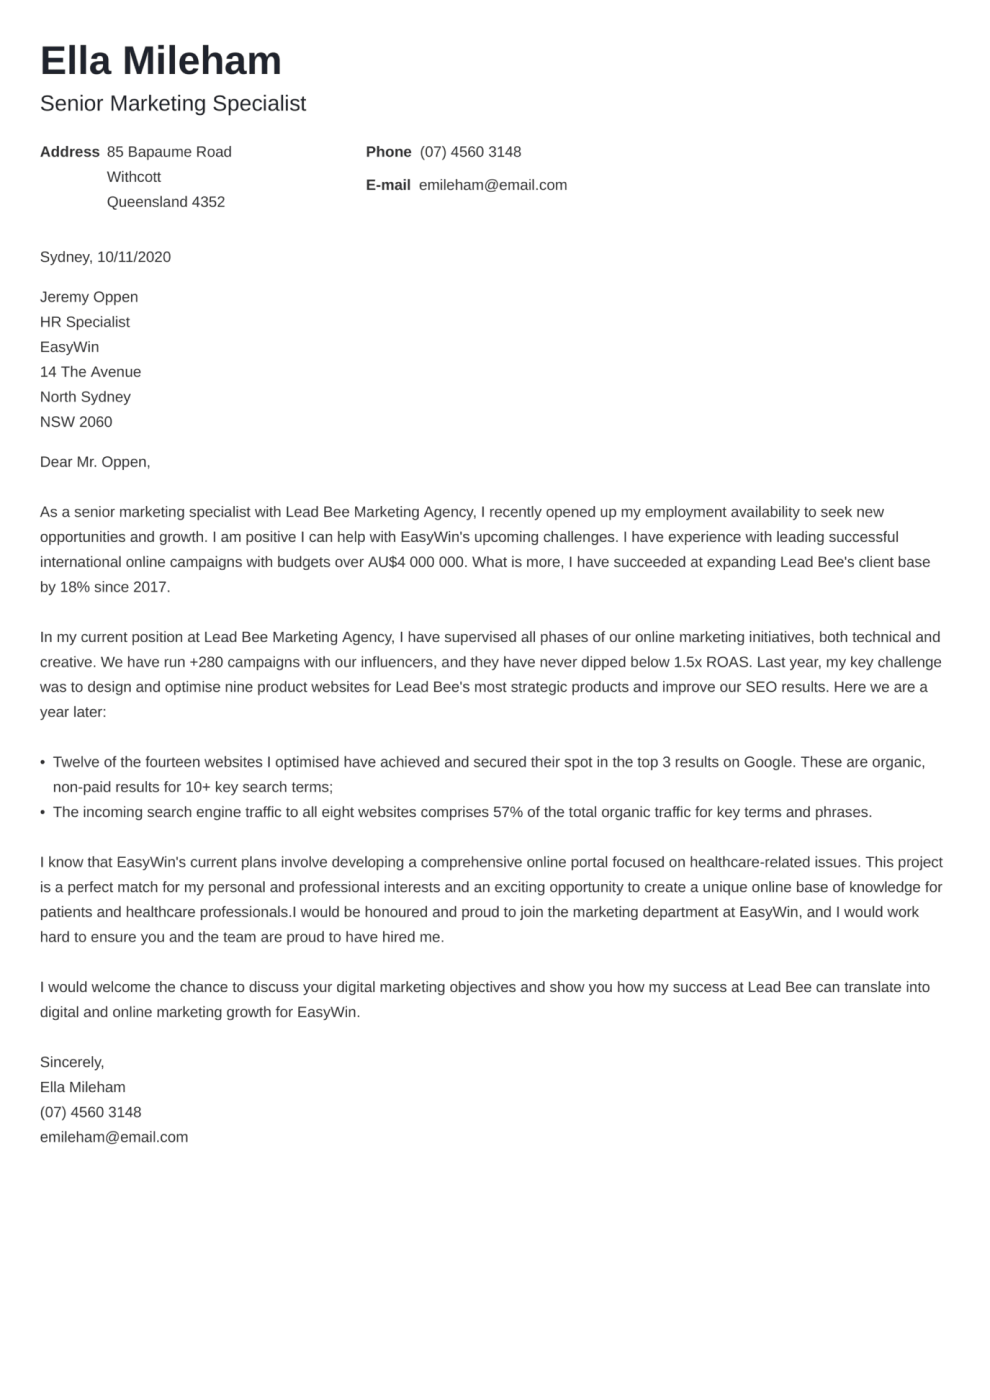 Newcast cover letter template